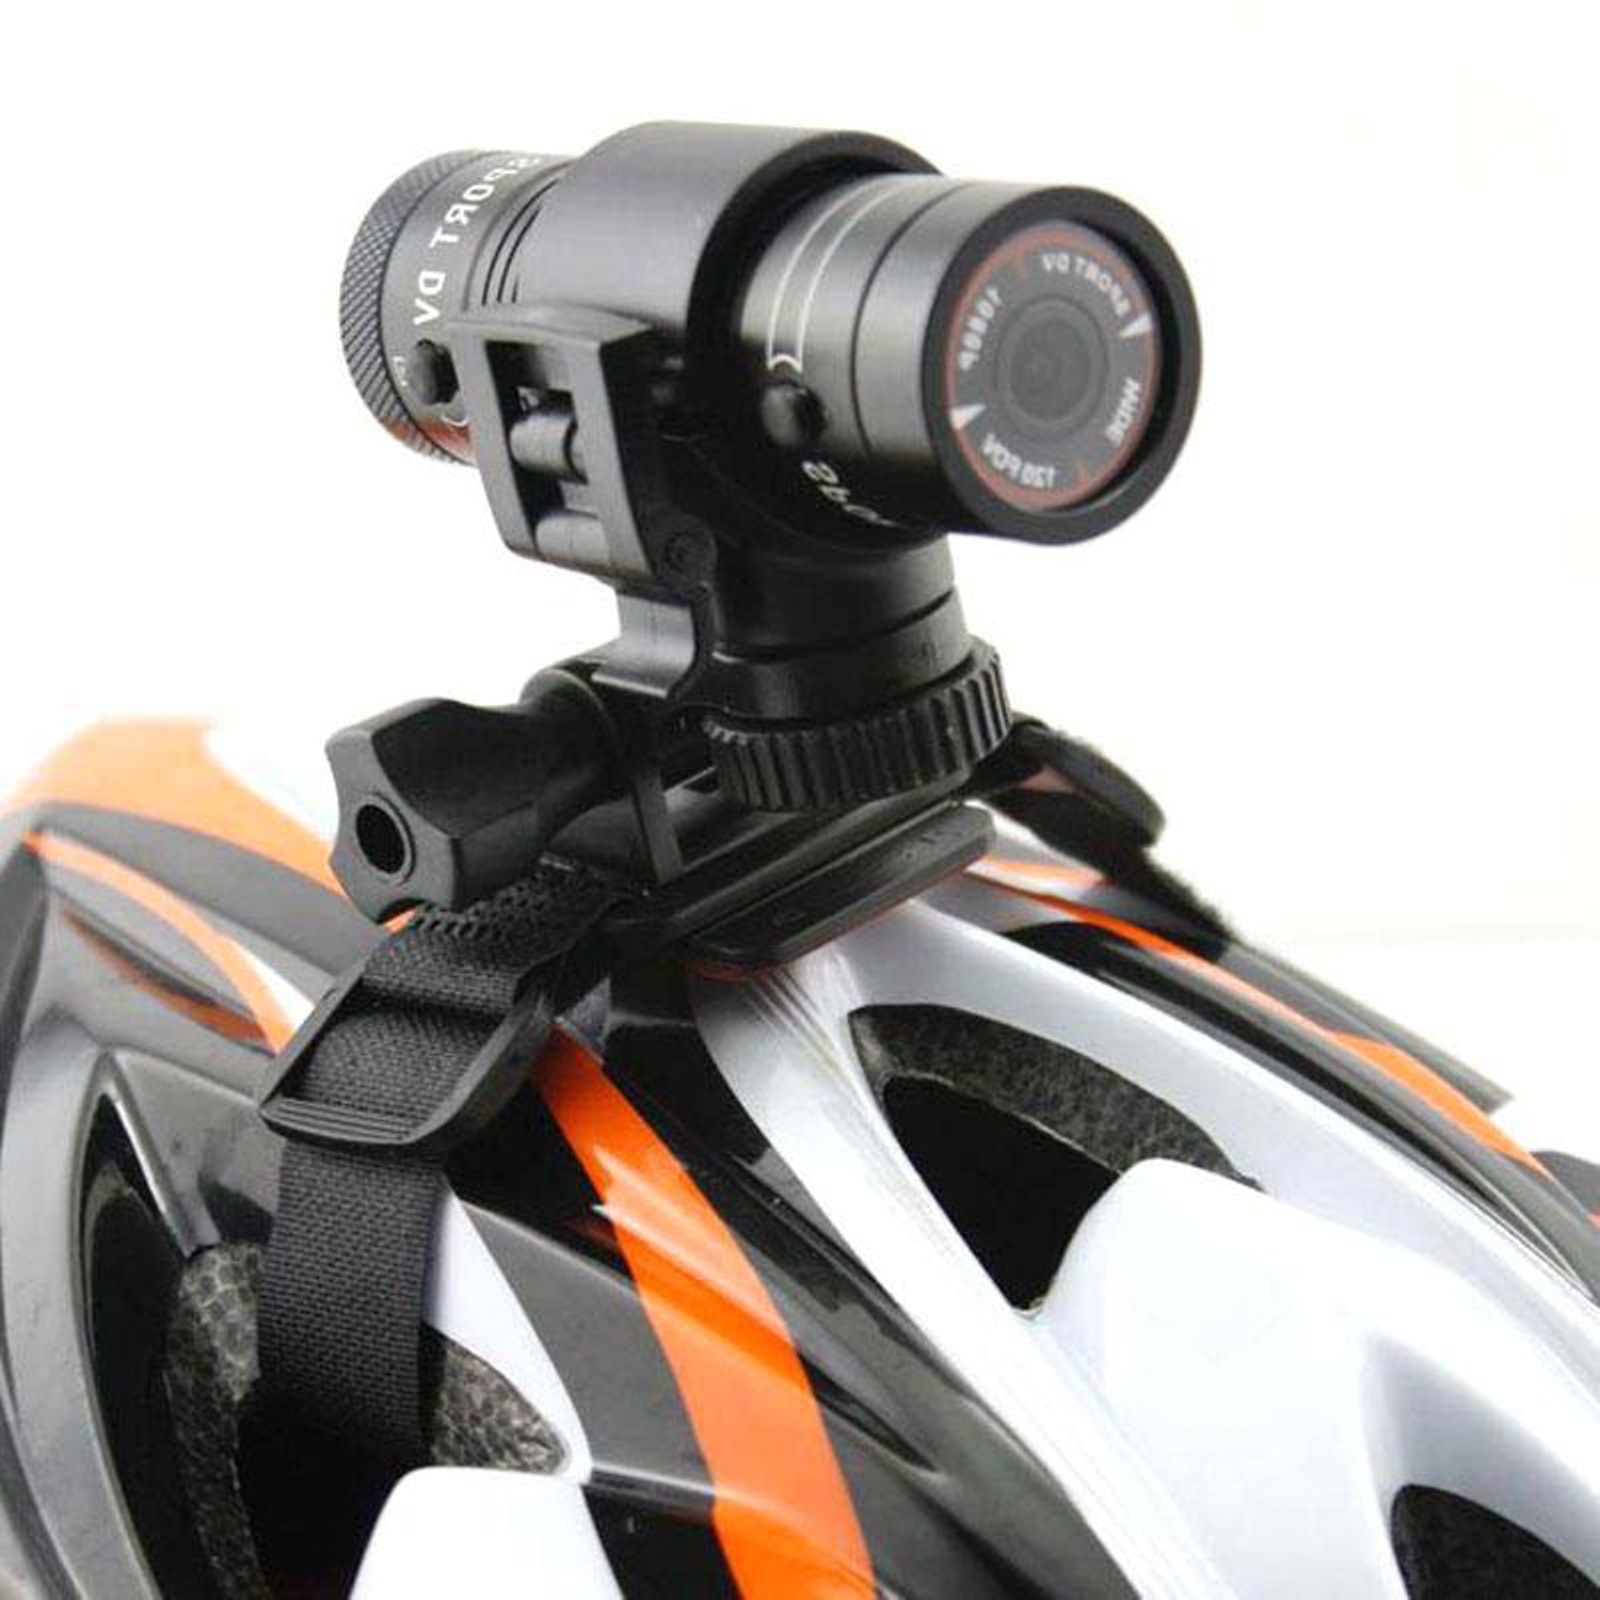 Surfing Version Camera HD Bike Motorcycle Sports Action Camera DVR Camcorder Car Diving Digital Video Recorder Auto Vehicle enlarge